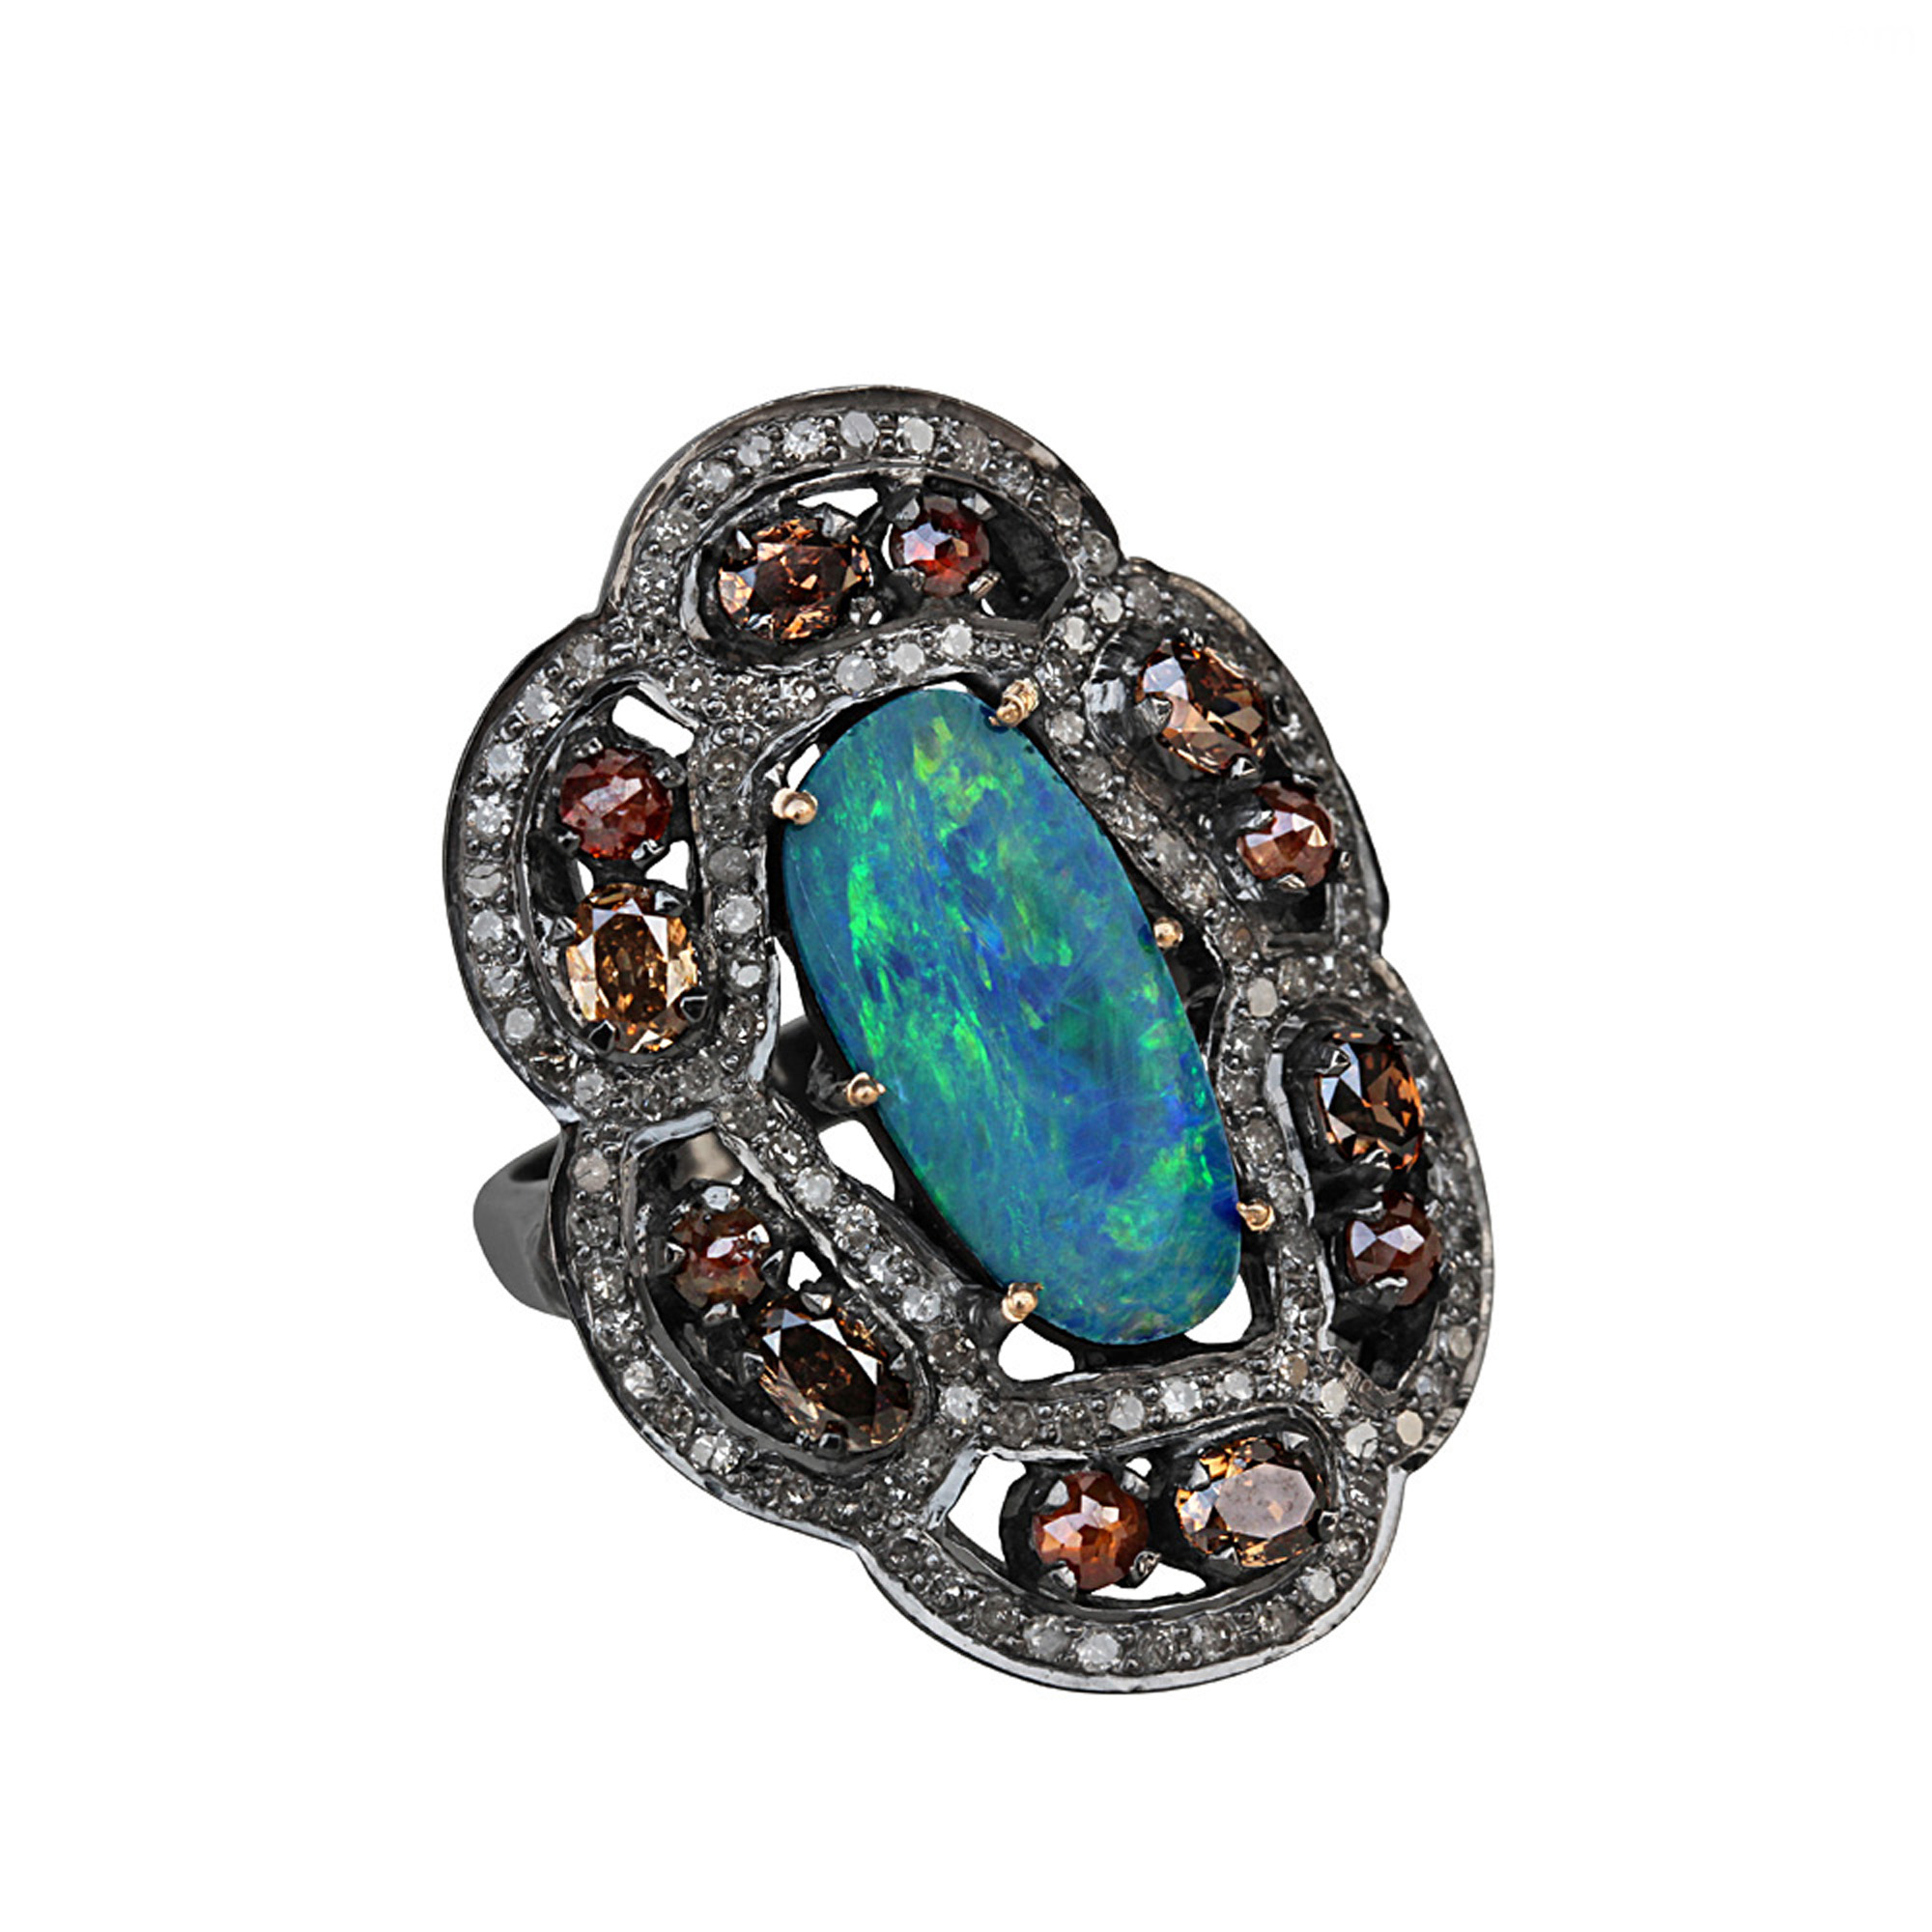 Sterling silver pave diamond ring, 14k gold & opal ring